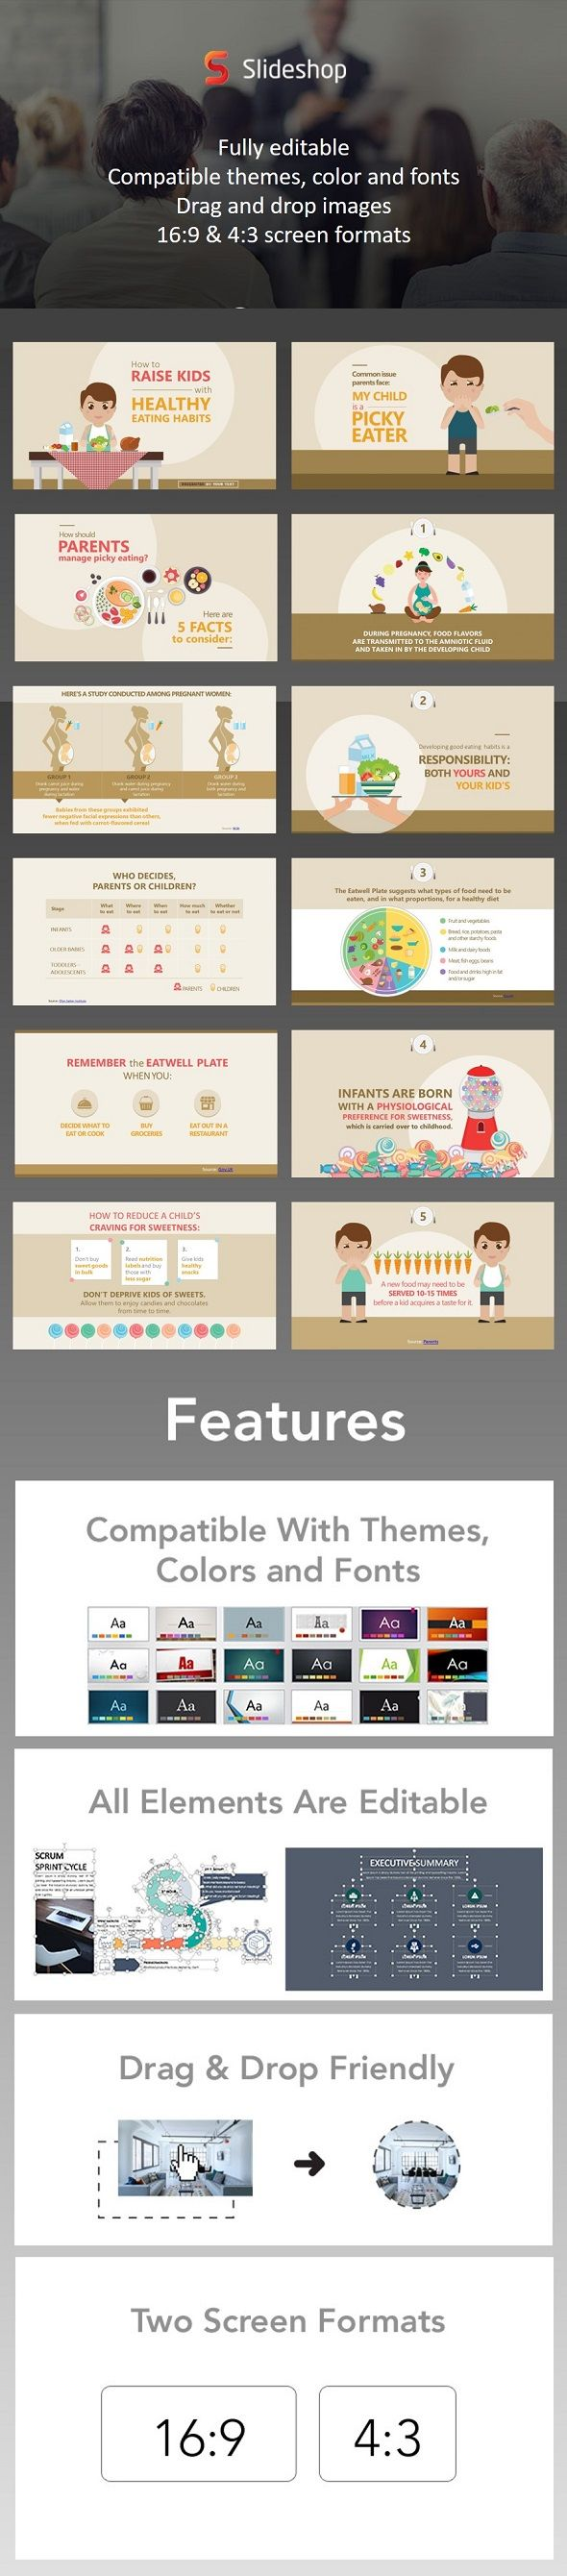 Nutrition pinterest presentation templates presentation format it comes with 15 easily customizable slides presentation format in pptx users will receive two presentation file sizes 43 and 169 upon download toneelgroepblik Image collections